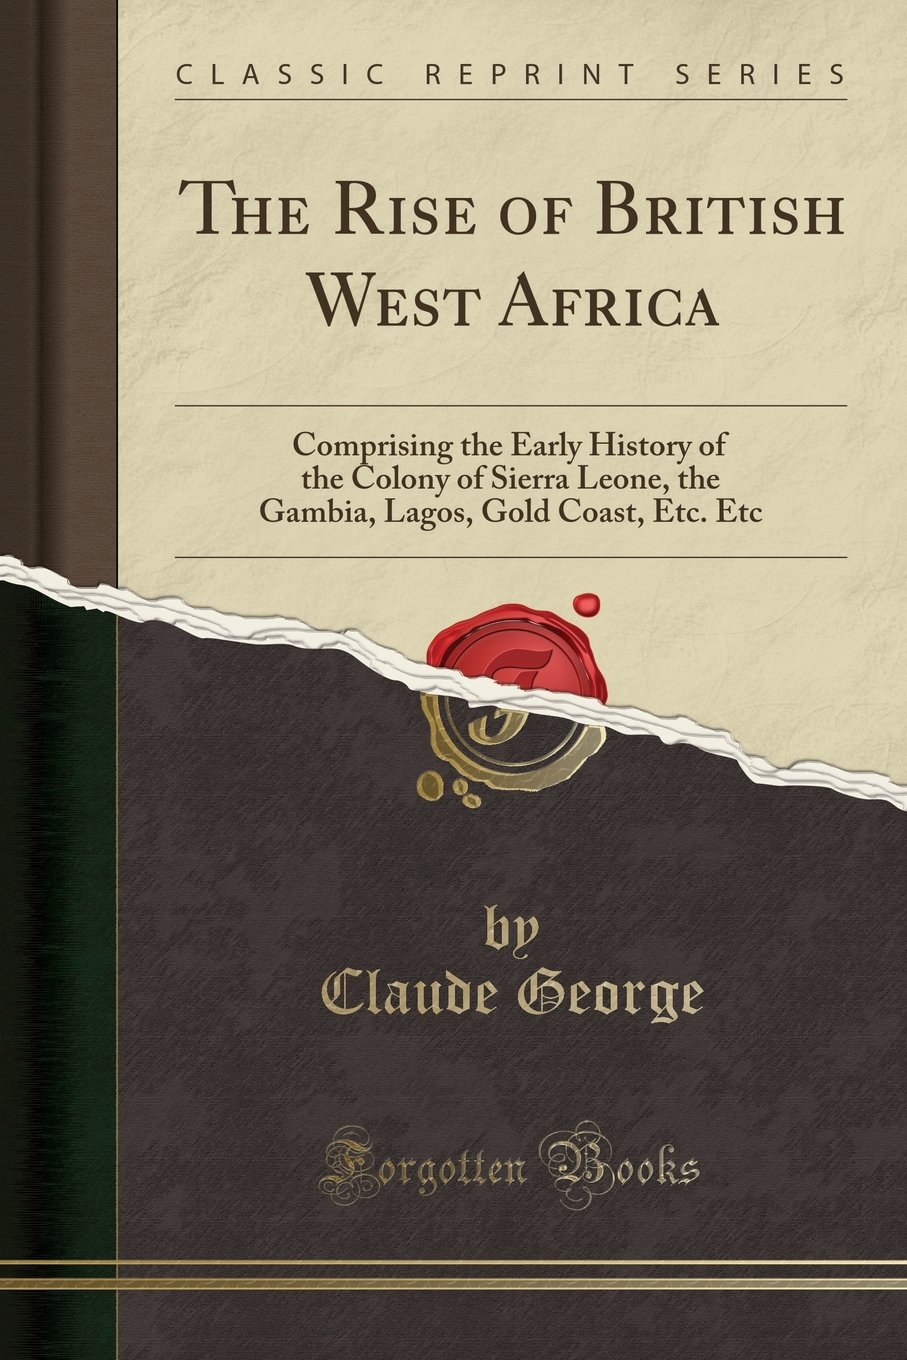 Download The Rise of British West Africa: Comprising the Early History of the Colony of Sierra Leone, the Gambia, Lagos, Gold Coast, Etc. Etc (Classic Reprint) PDF